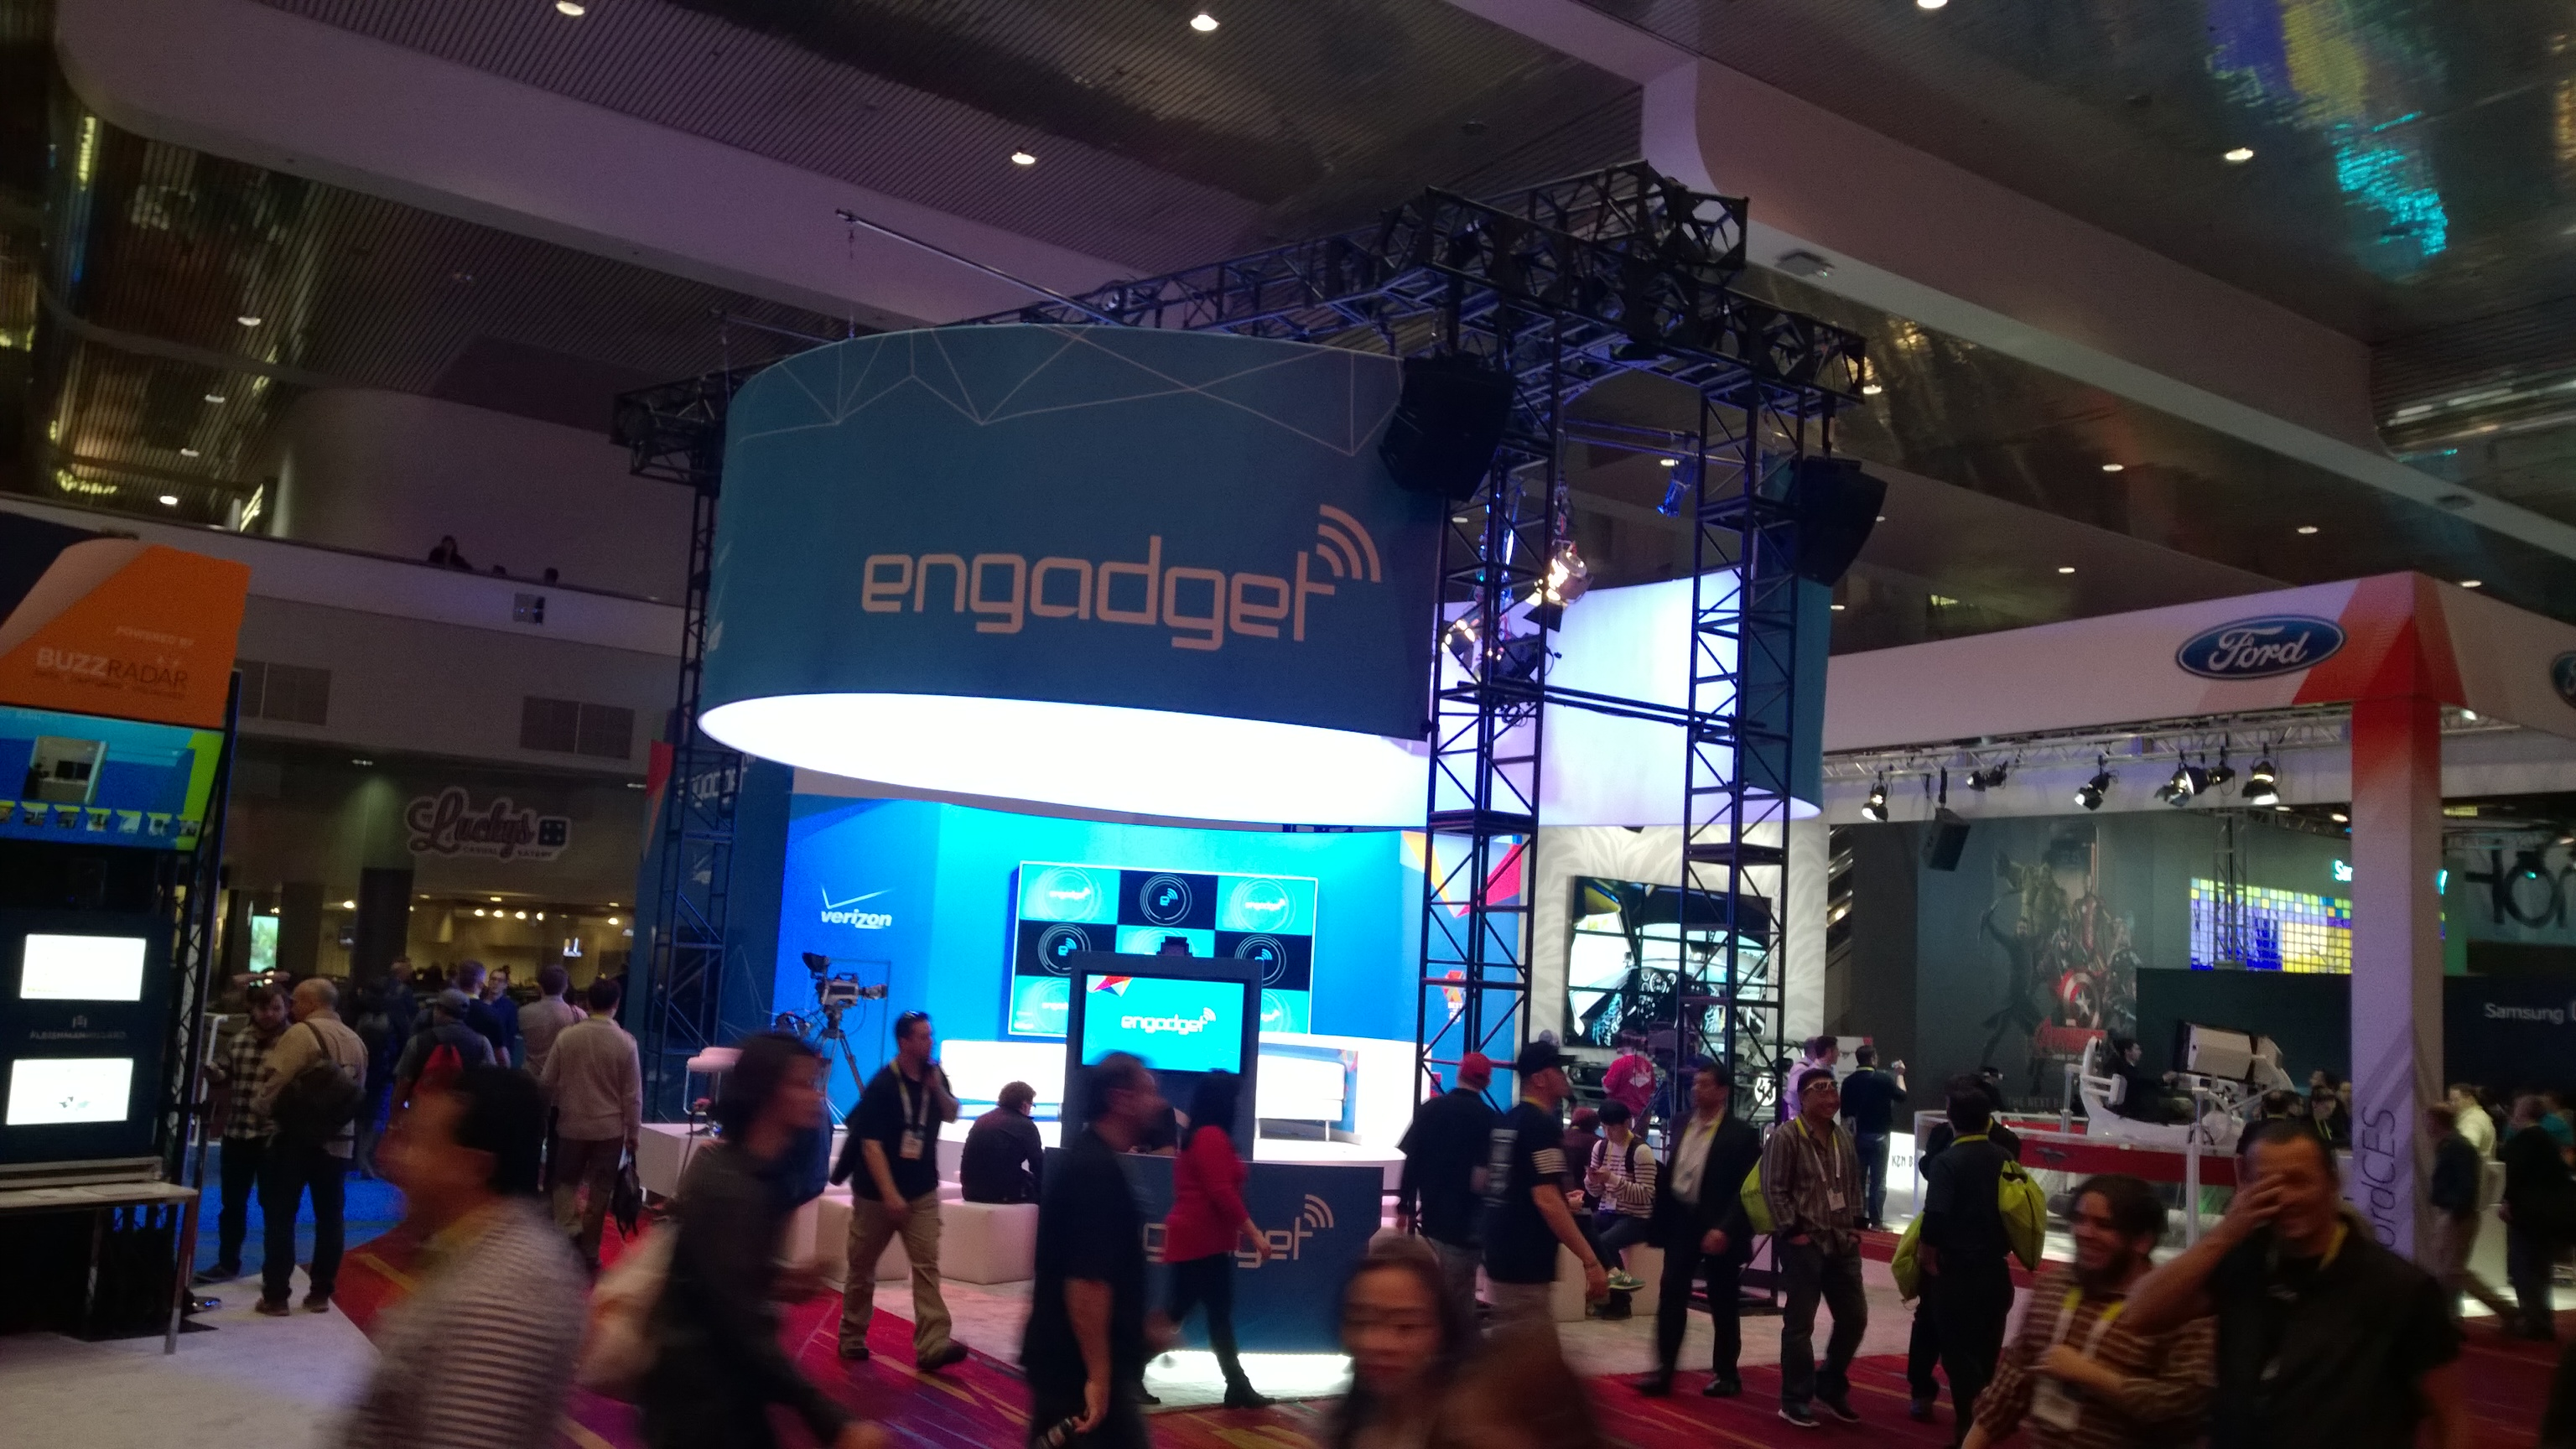 Engadget booth